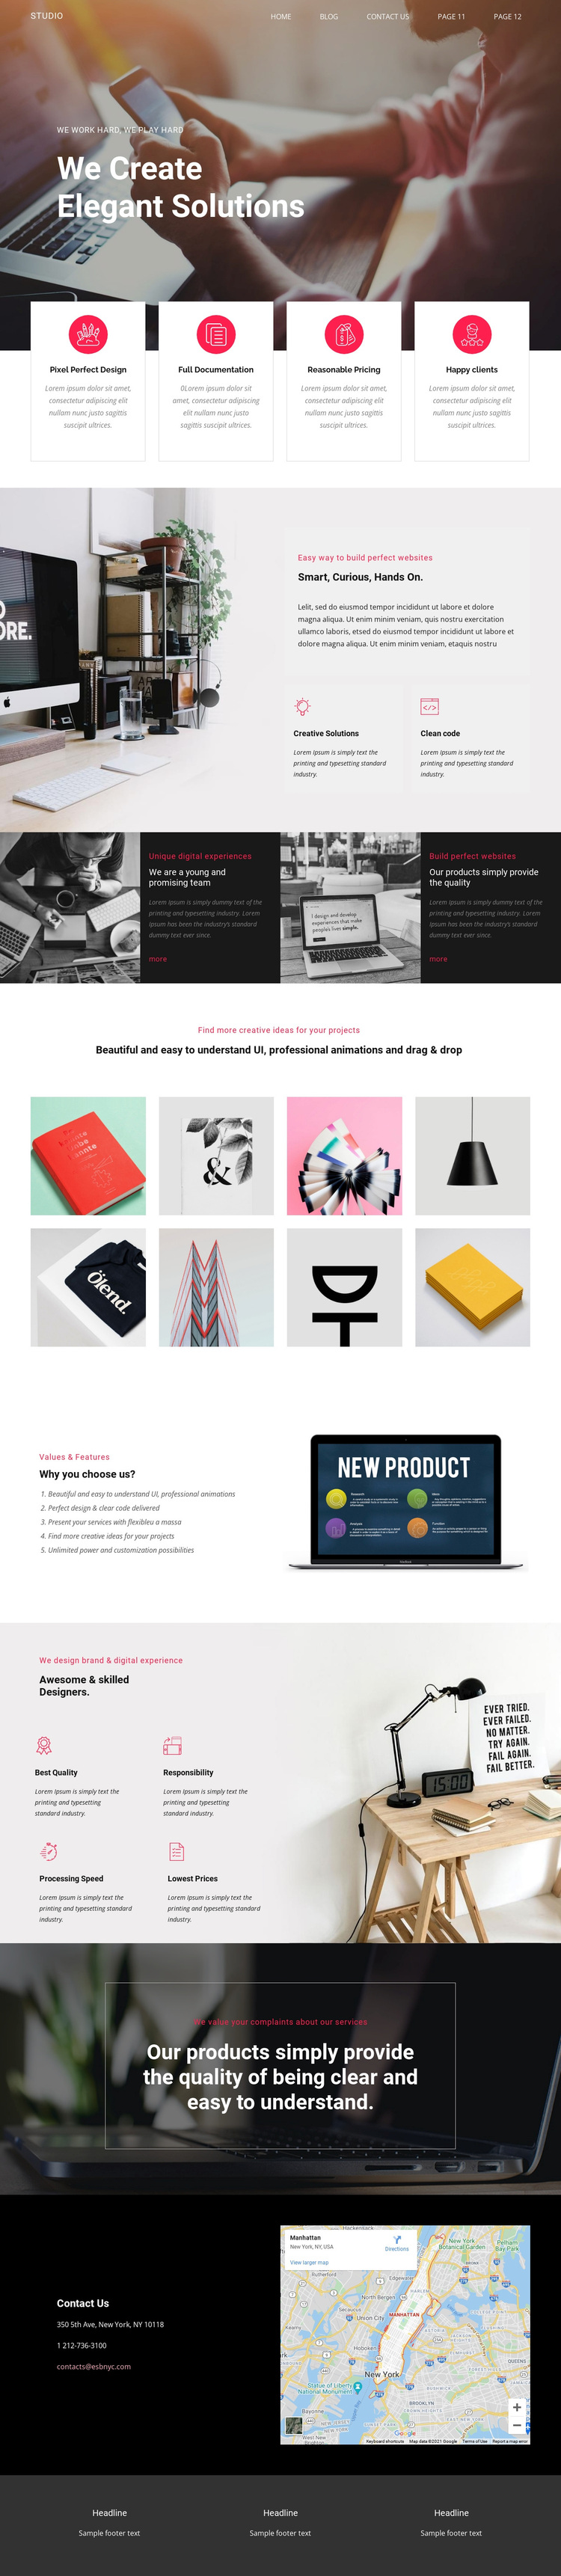 Elegant solutions in business  Template